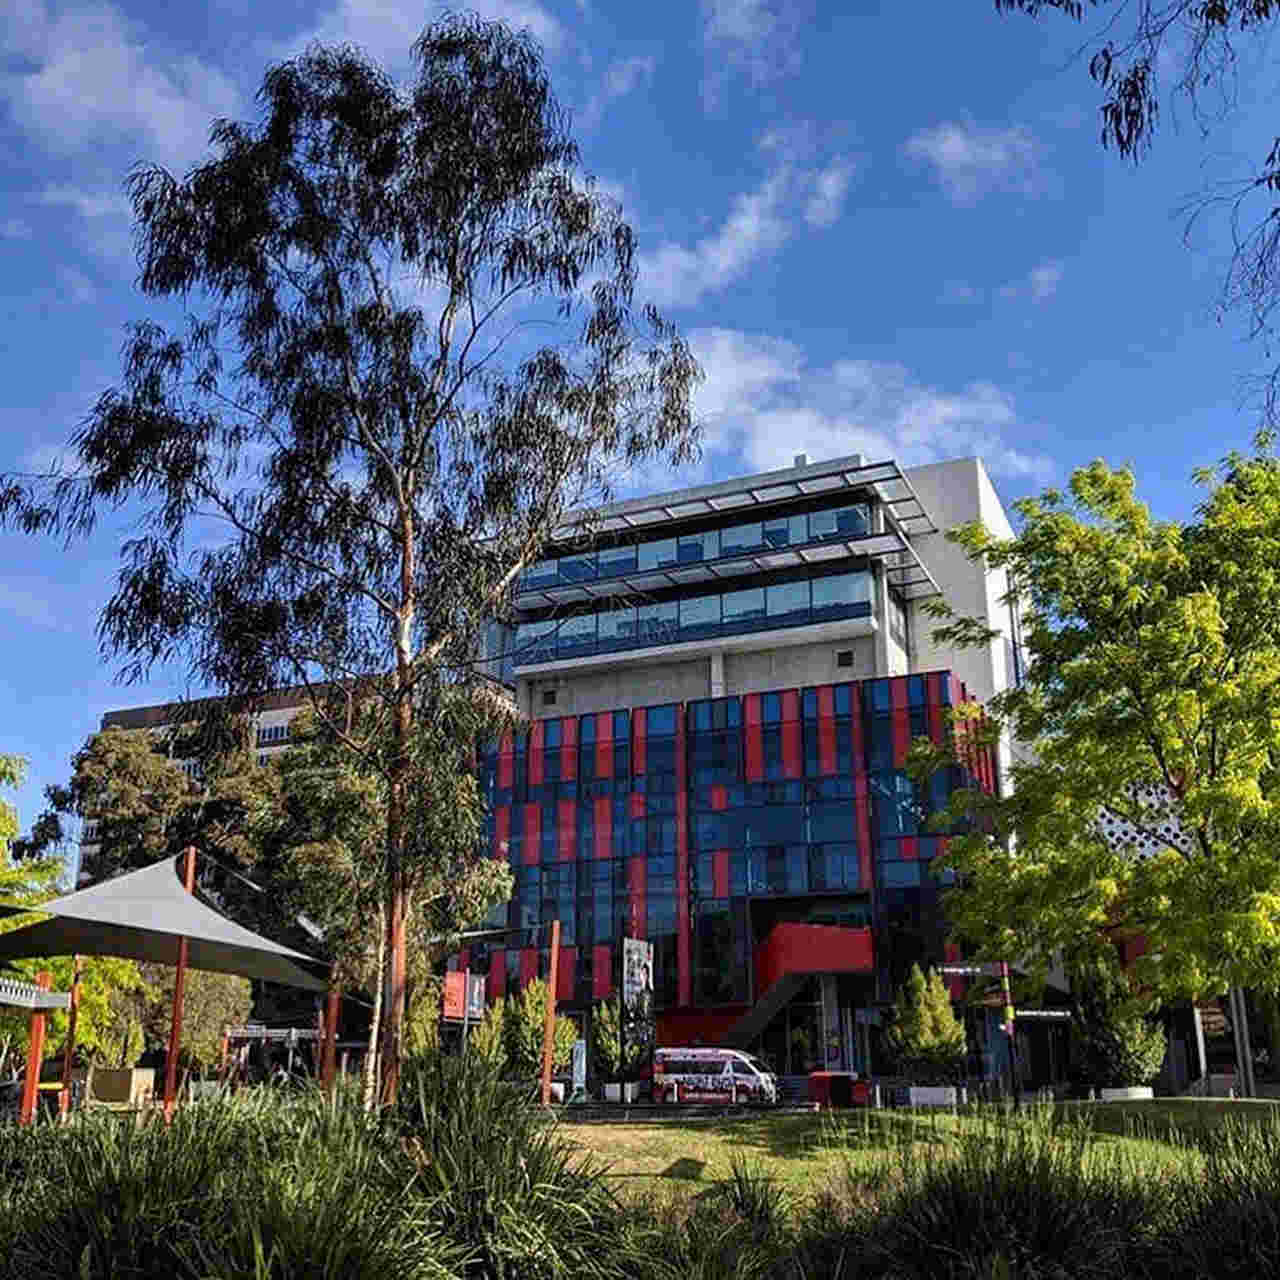 Sky, Architecture, Property, House, Building, Tree, Cloud, Botany, Home, Real estate, City, Spring, Leisure, Tourism, Mixed-use, Plant, Rural area, Swinburne University of Technology, Swinburne University of Technology